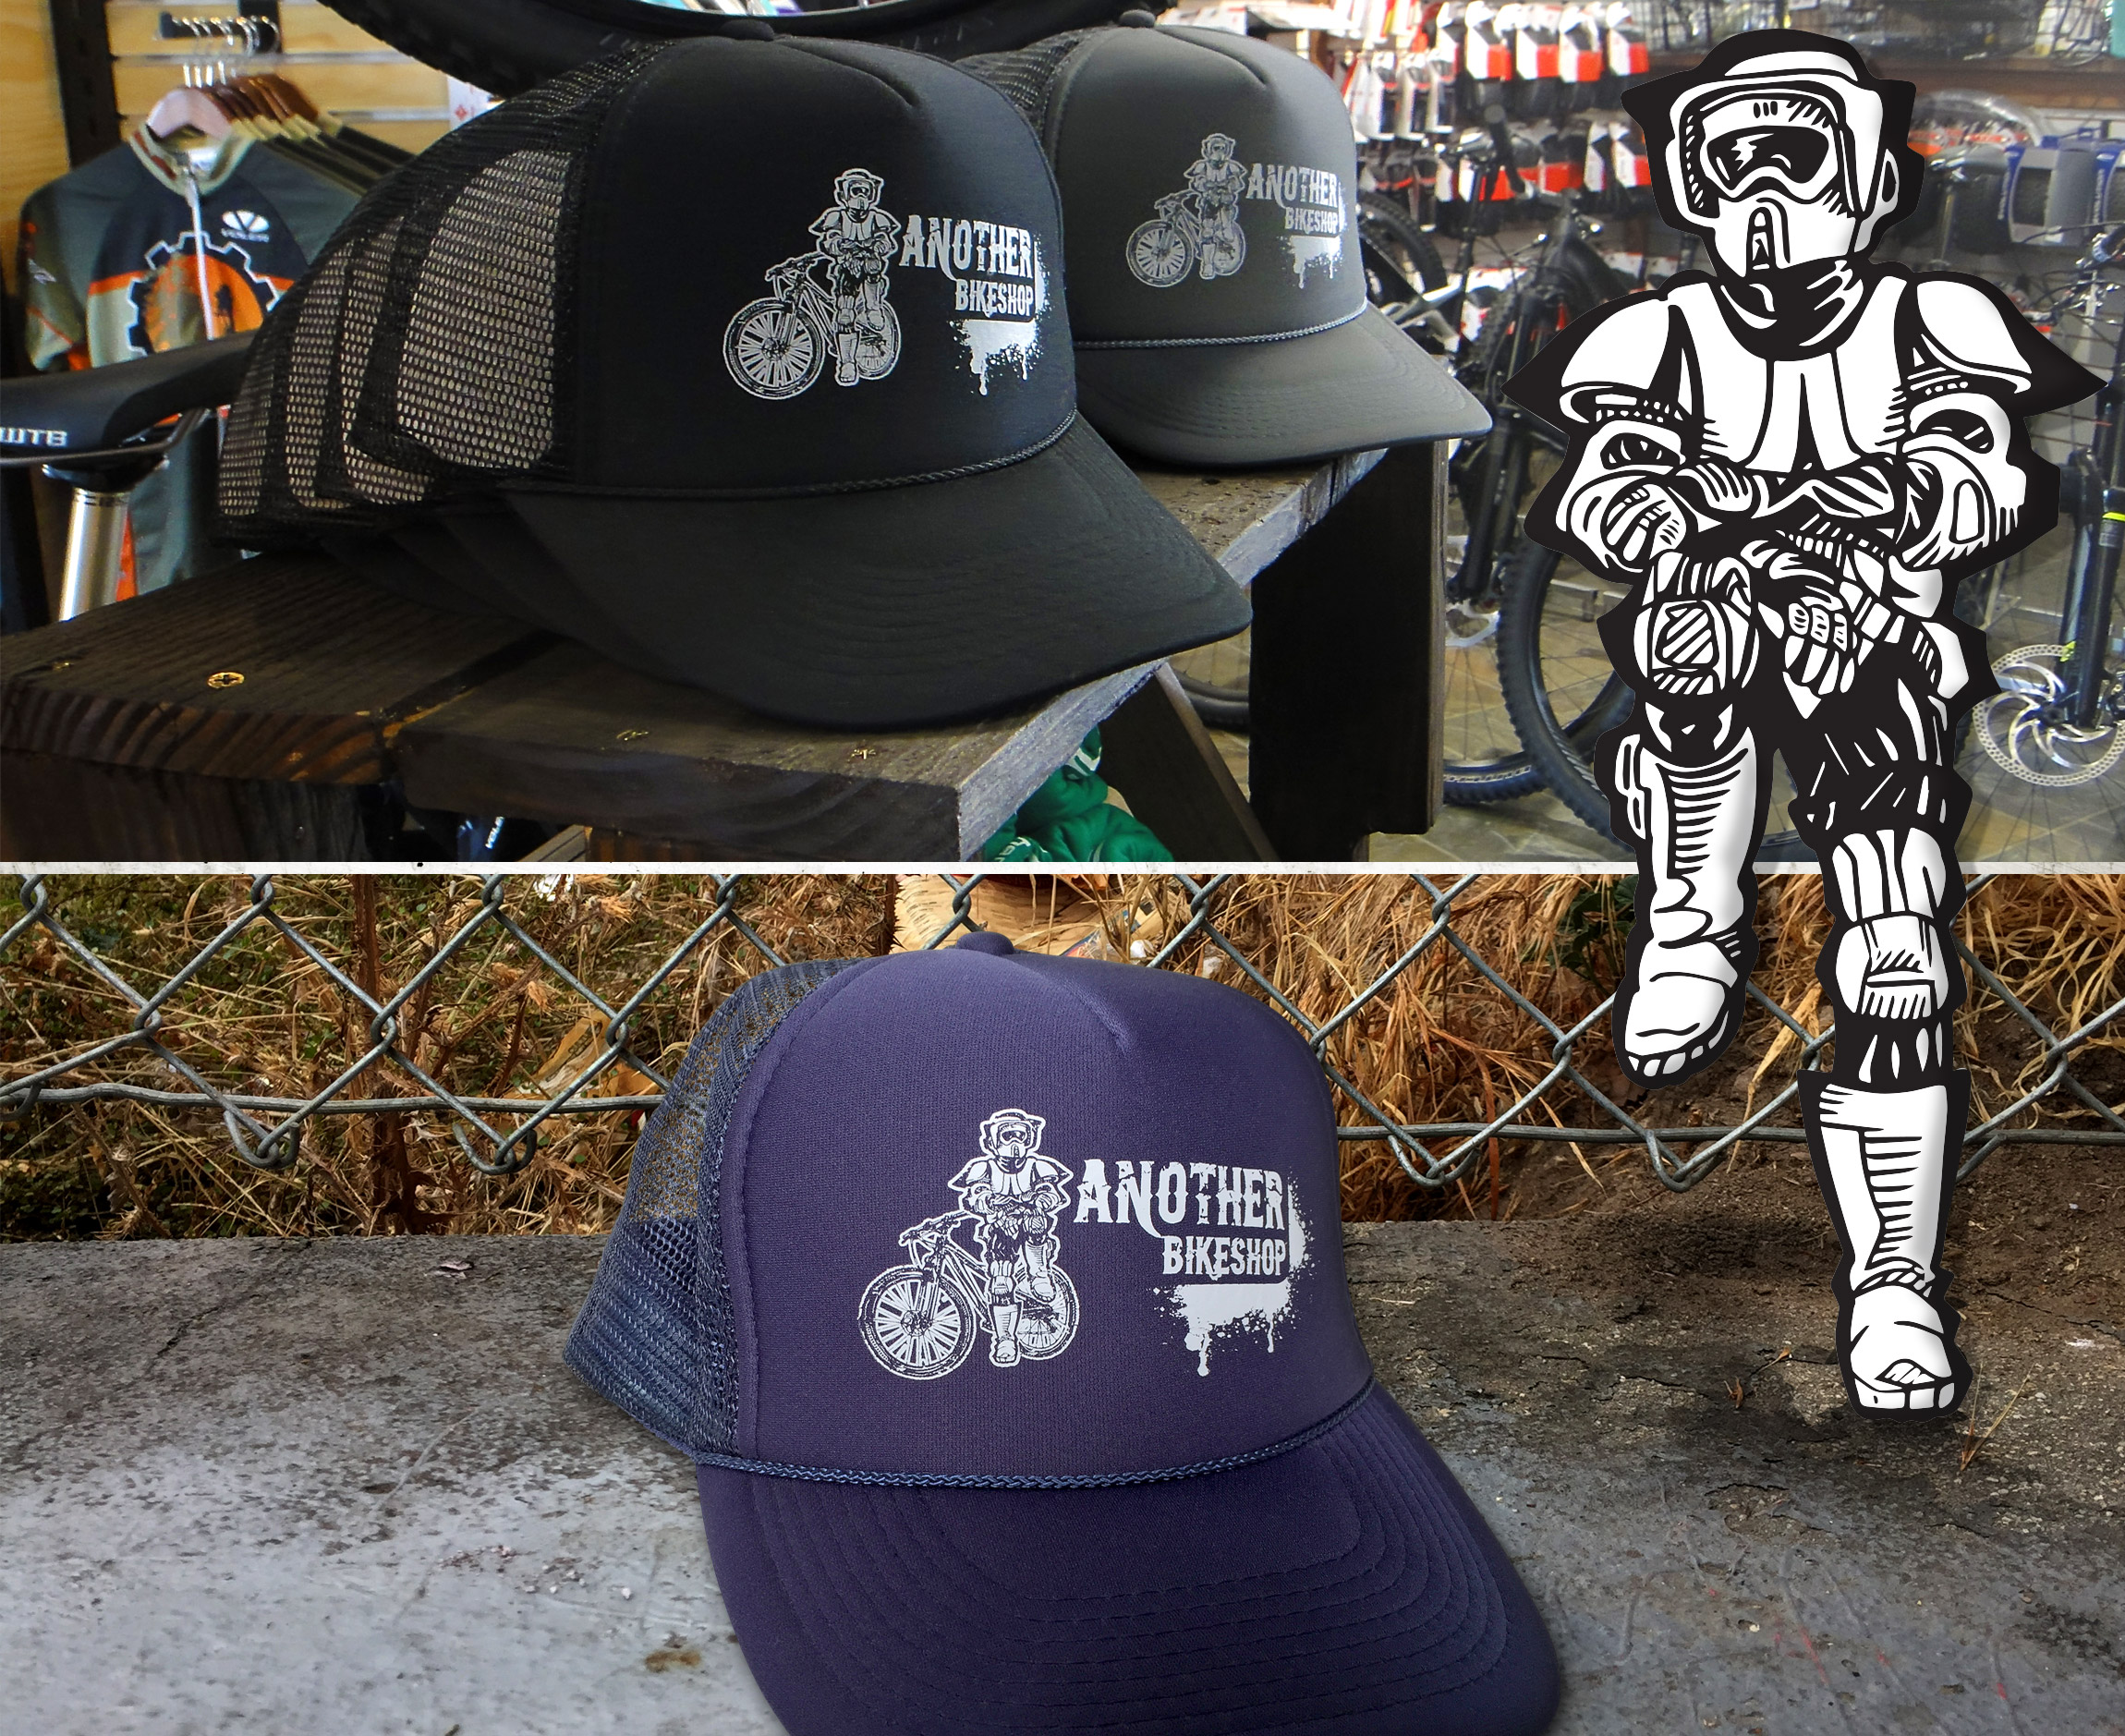 ABS - Another Bike Shop - Star Wars storm trooper trucker hat bike apparel design - Graphic Regime